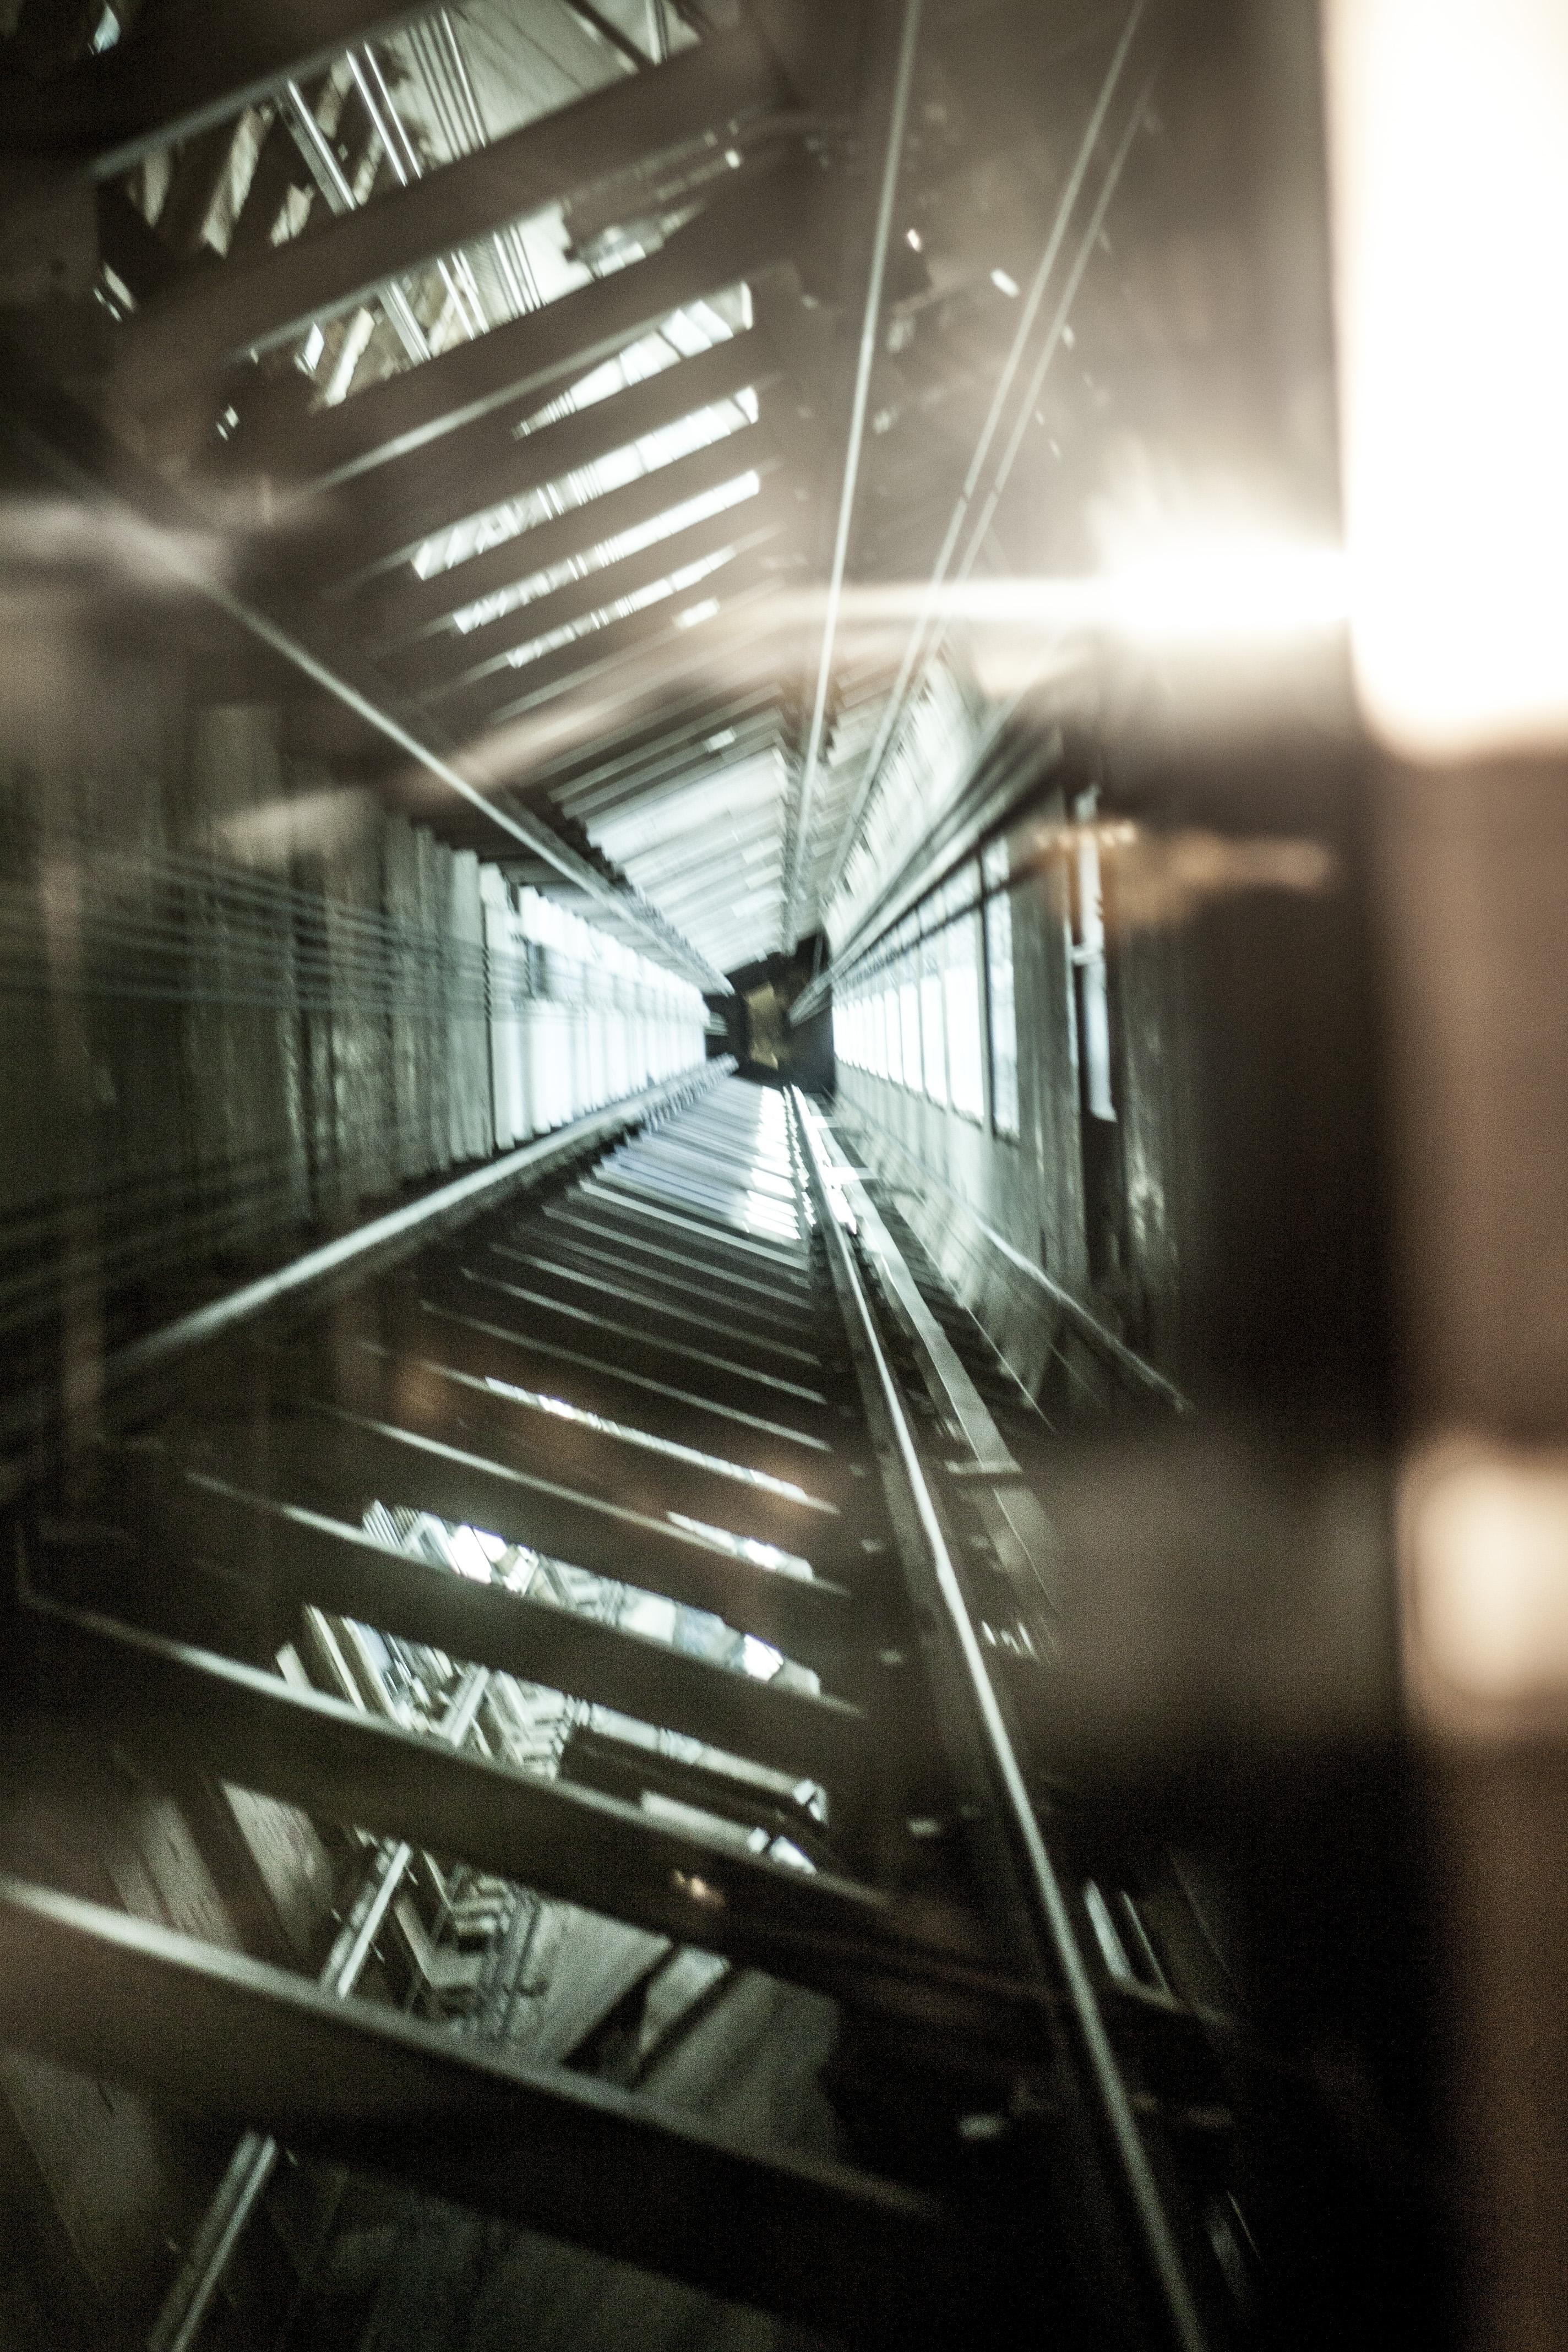 The Dutch Ministry of Social Affairs requires the accredited inspection of lifts